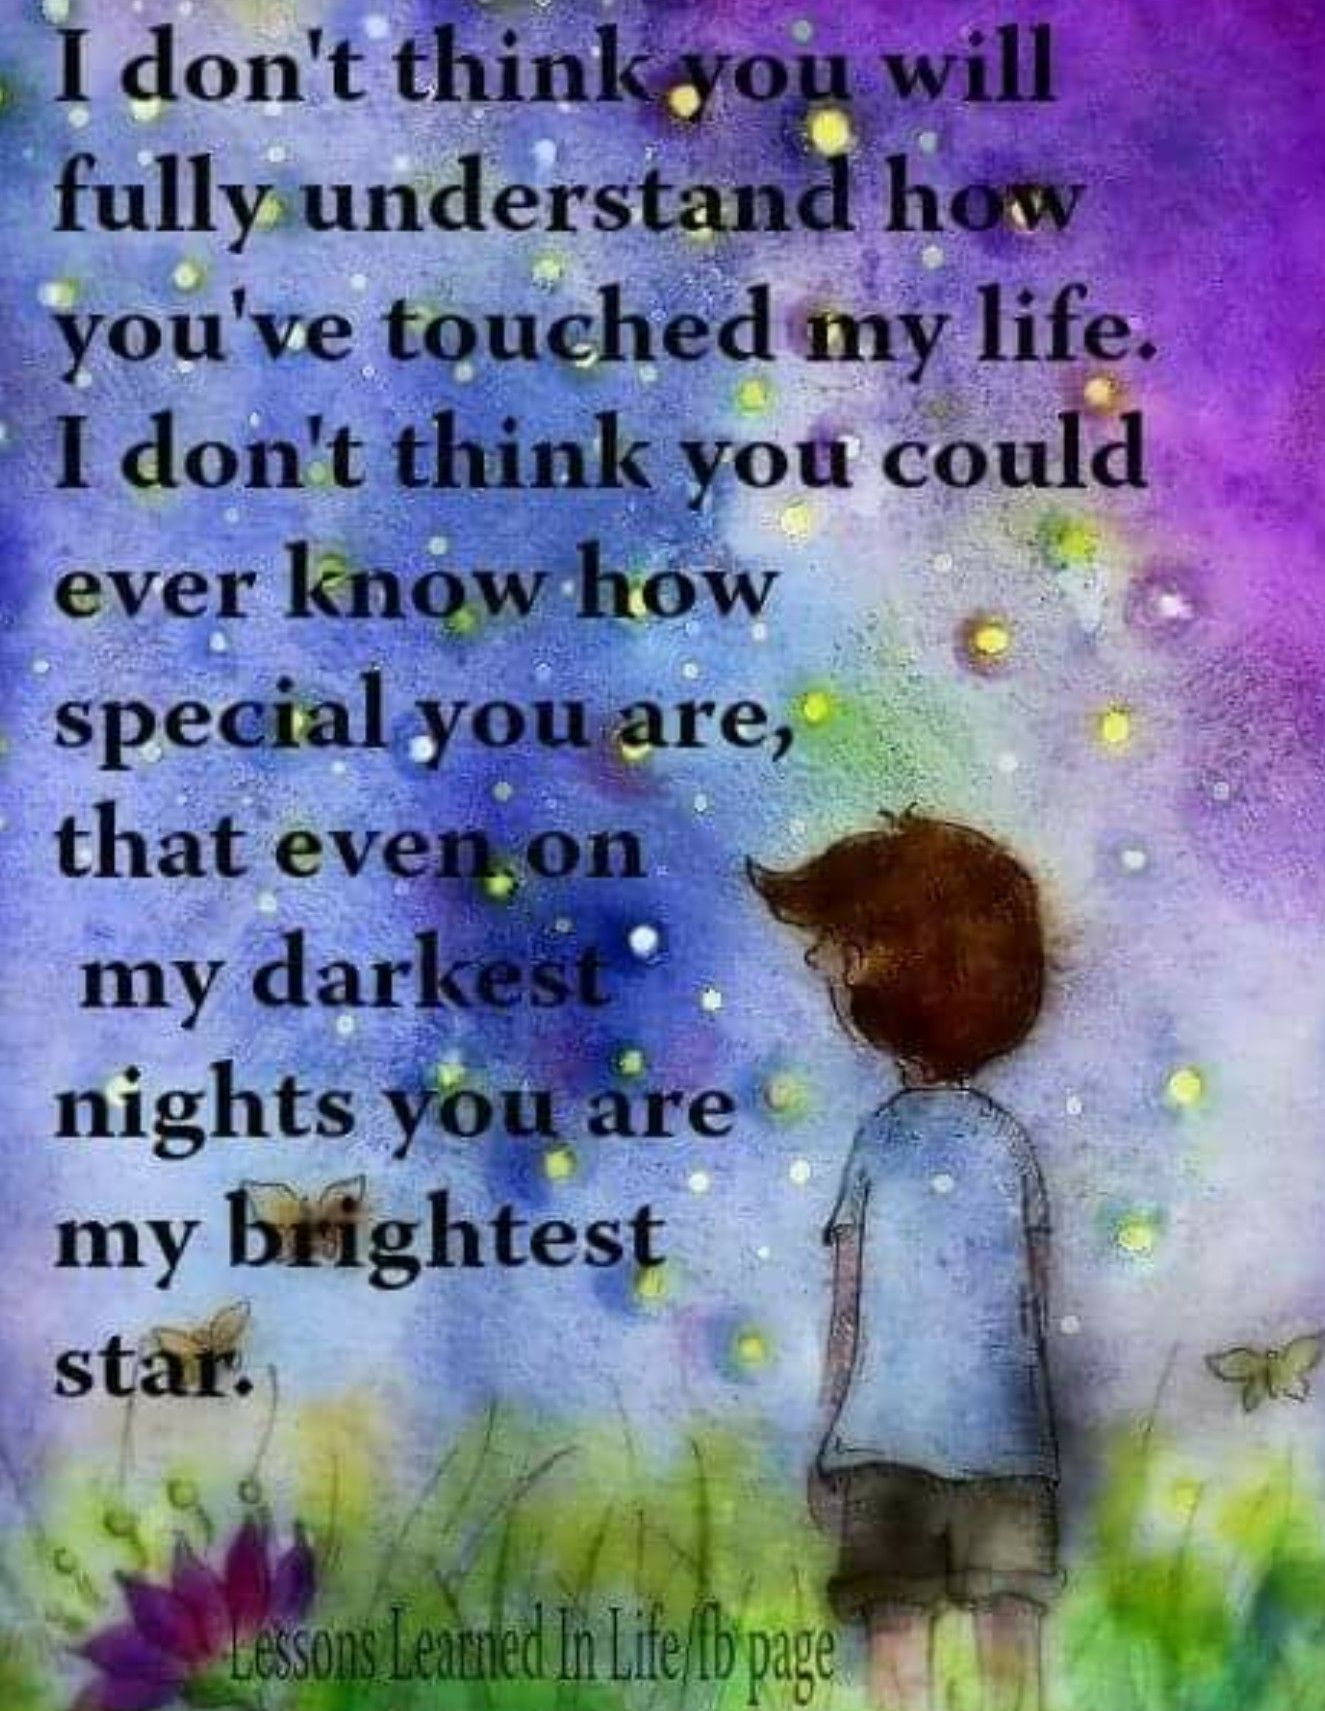 So Very True Missing My Son So Very Much Missing My Son Marcos